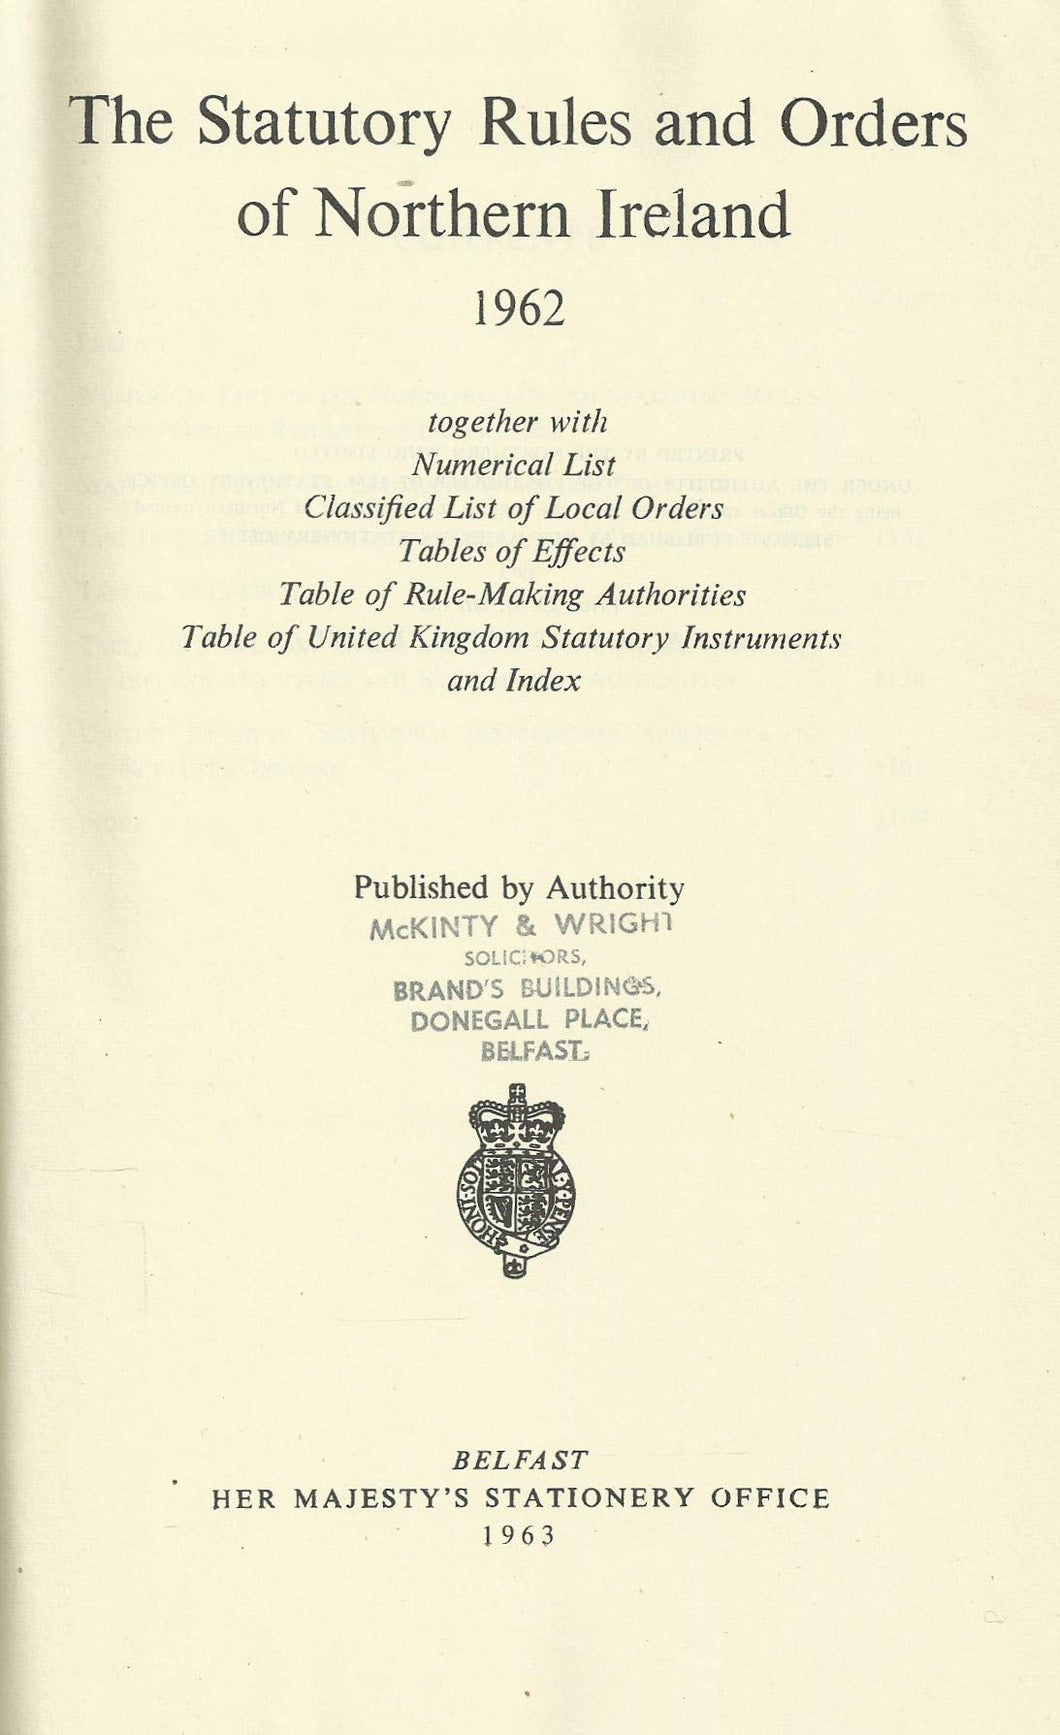 Northern Ireland Statutory Rules and Orders, 1962 - The Statutory Rules and Orders of Northern Ireland